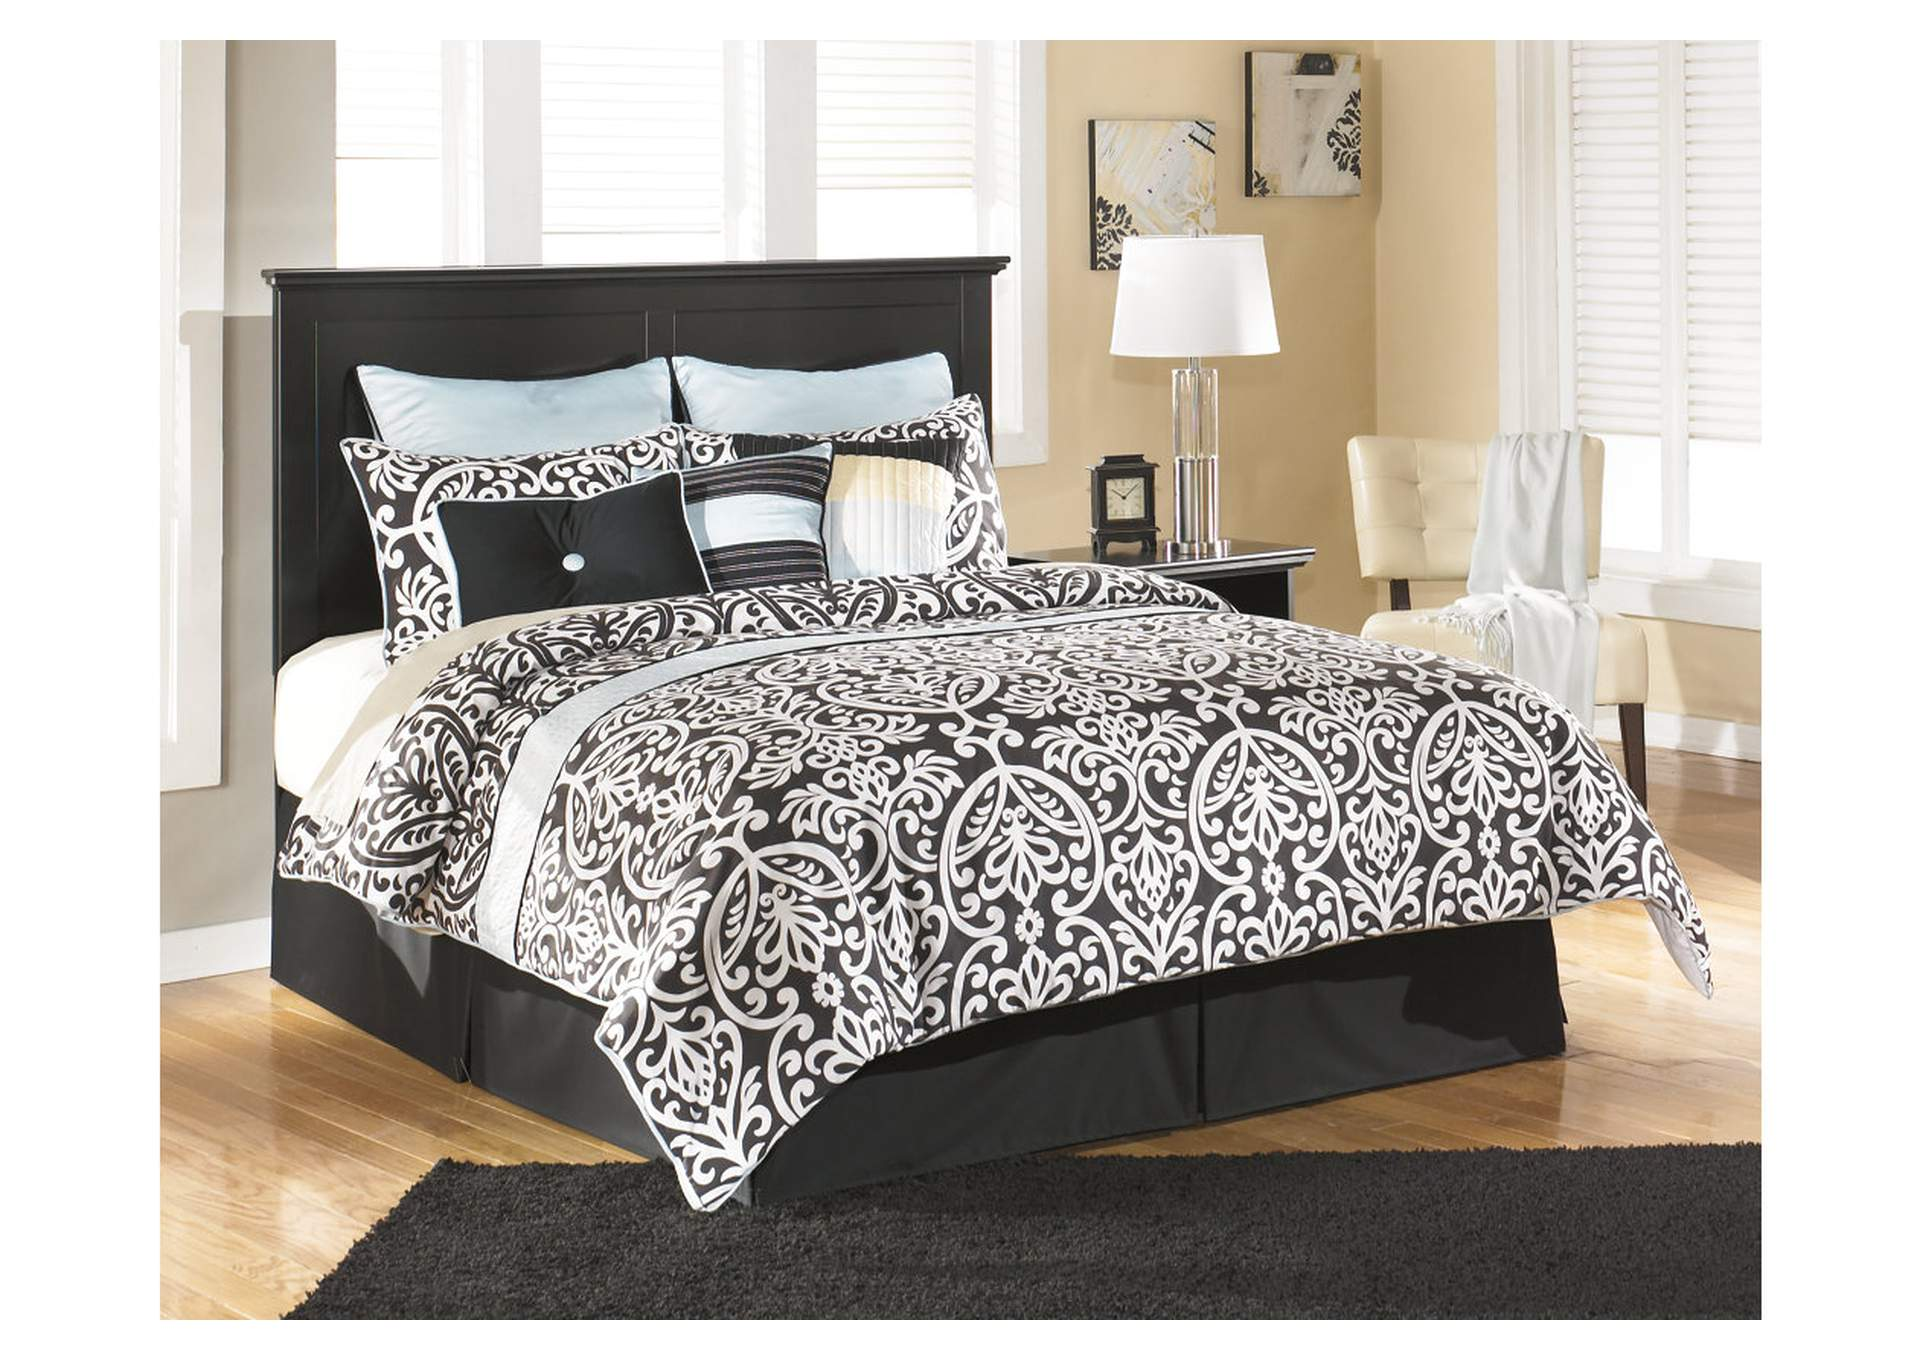 Maribel Black Queen/Full Panel Headboard,Signature Design By Ashley